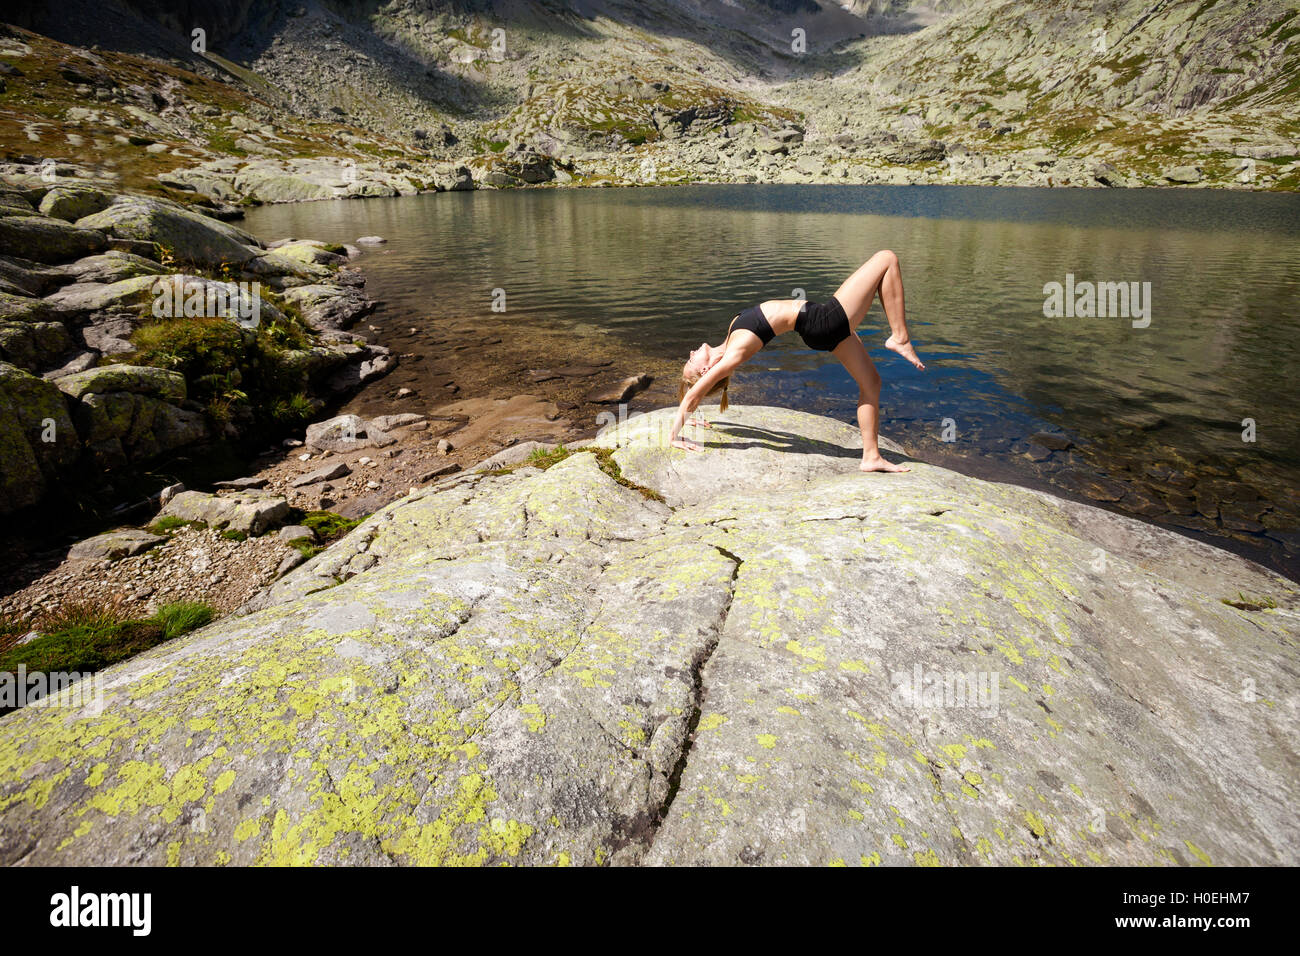 Exercise yoga everywhere - in slovakian Tatry mountains. Beautiful panorama - Chata Teryho, kotlina Piatich Spisskych - Stock Image